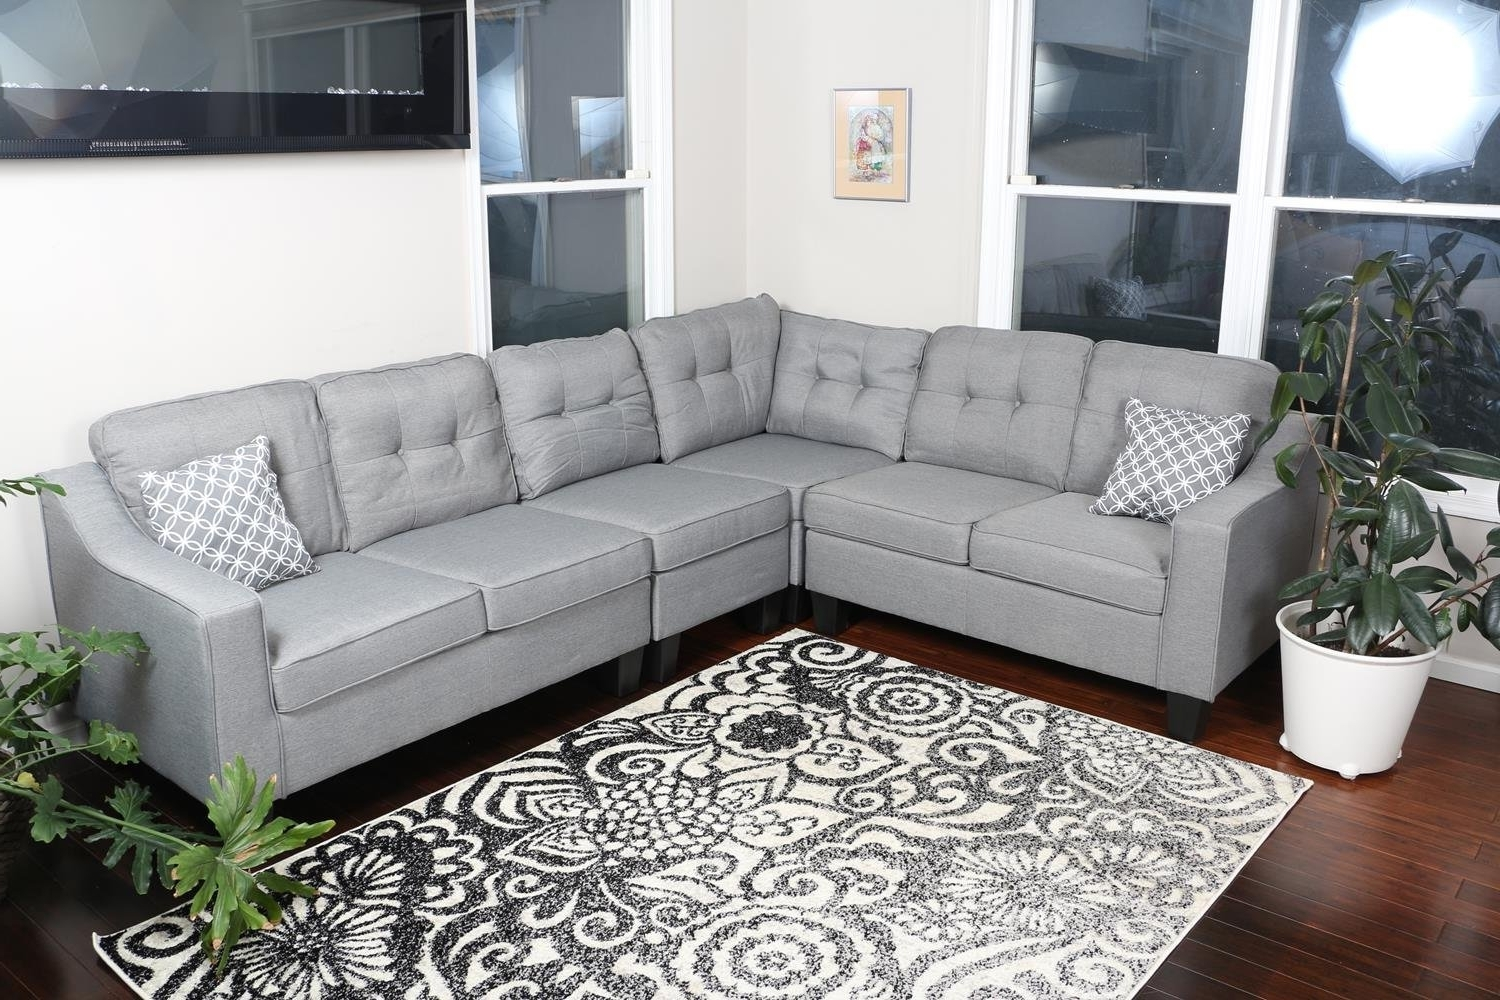 2019 Kelowna Sectional Sofas Intended For Furniture : Corner Couch Images Sectional Couch 3D Model Sectional (View 3 of 20)